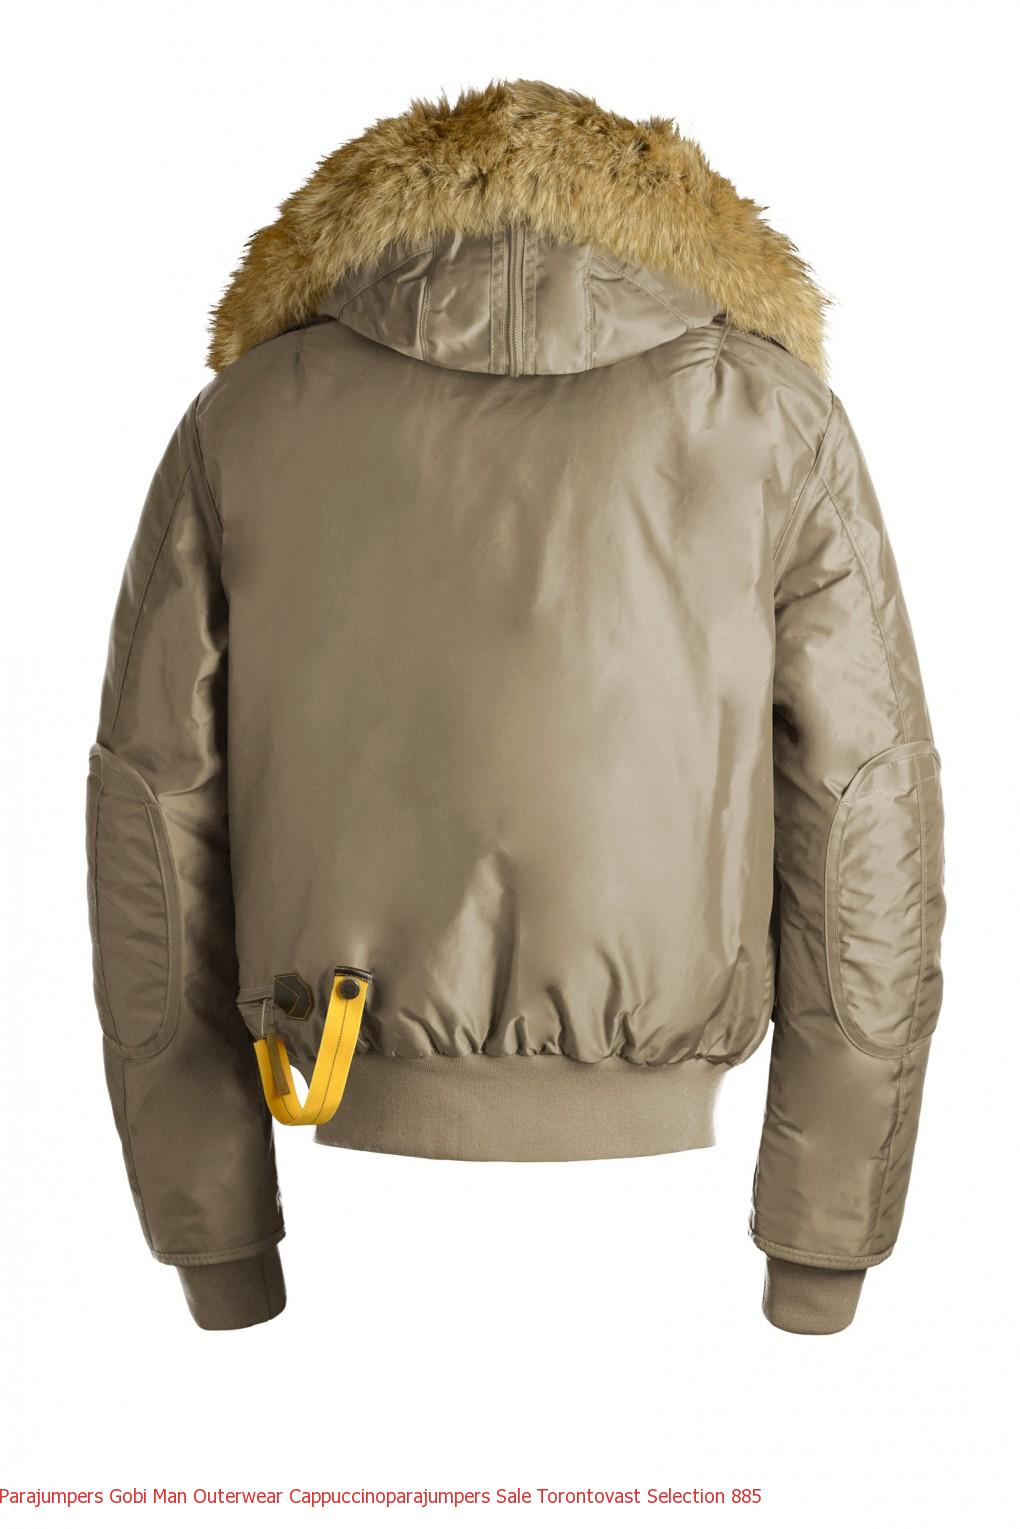 Parajumpers Gobi Man Outerwear Cappuccinoparajumpers Sale Torontovast Selection 888